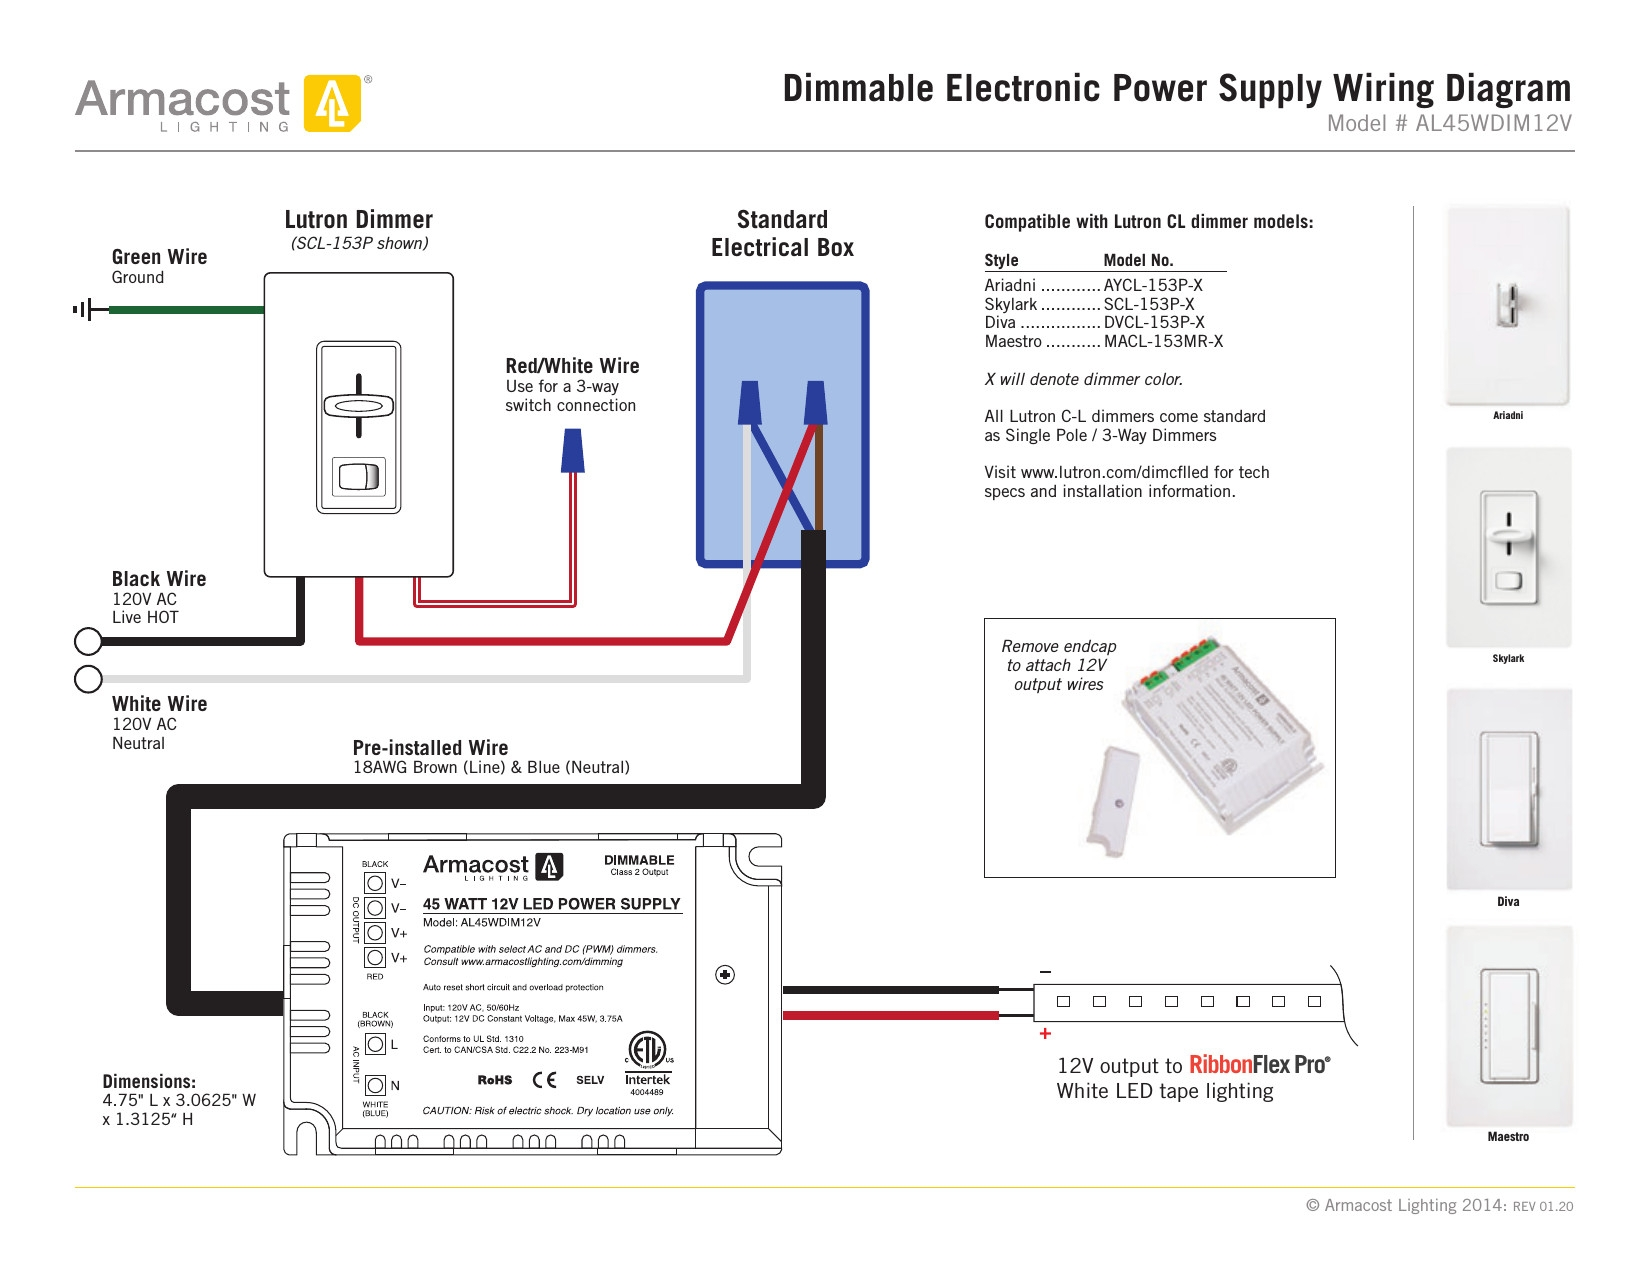 lutron maestro led dimmer wiring diagram Download-lutron maestro led dimmer wiring diagram Collection Lutron Led Dimmer Switch Wiring Diagram Beautiful Lutron 16-l